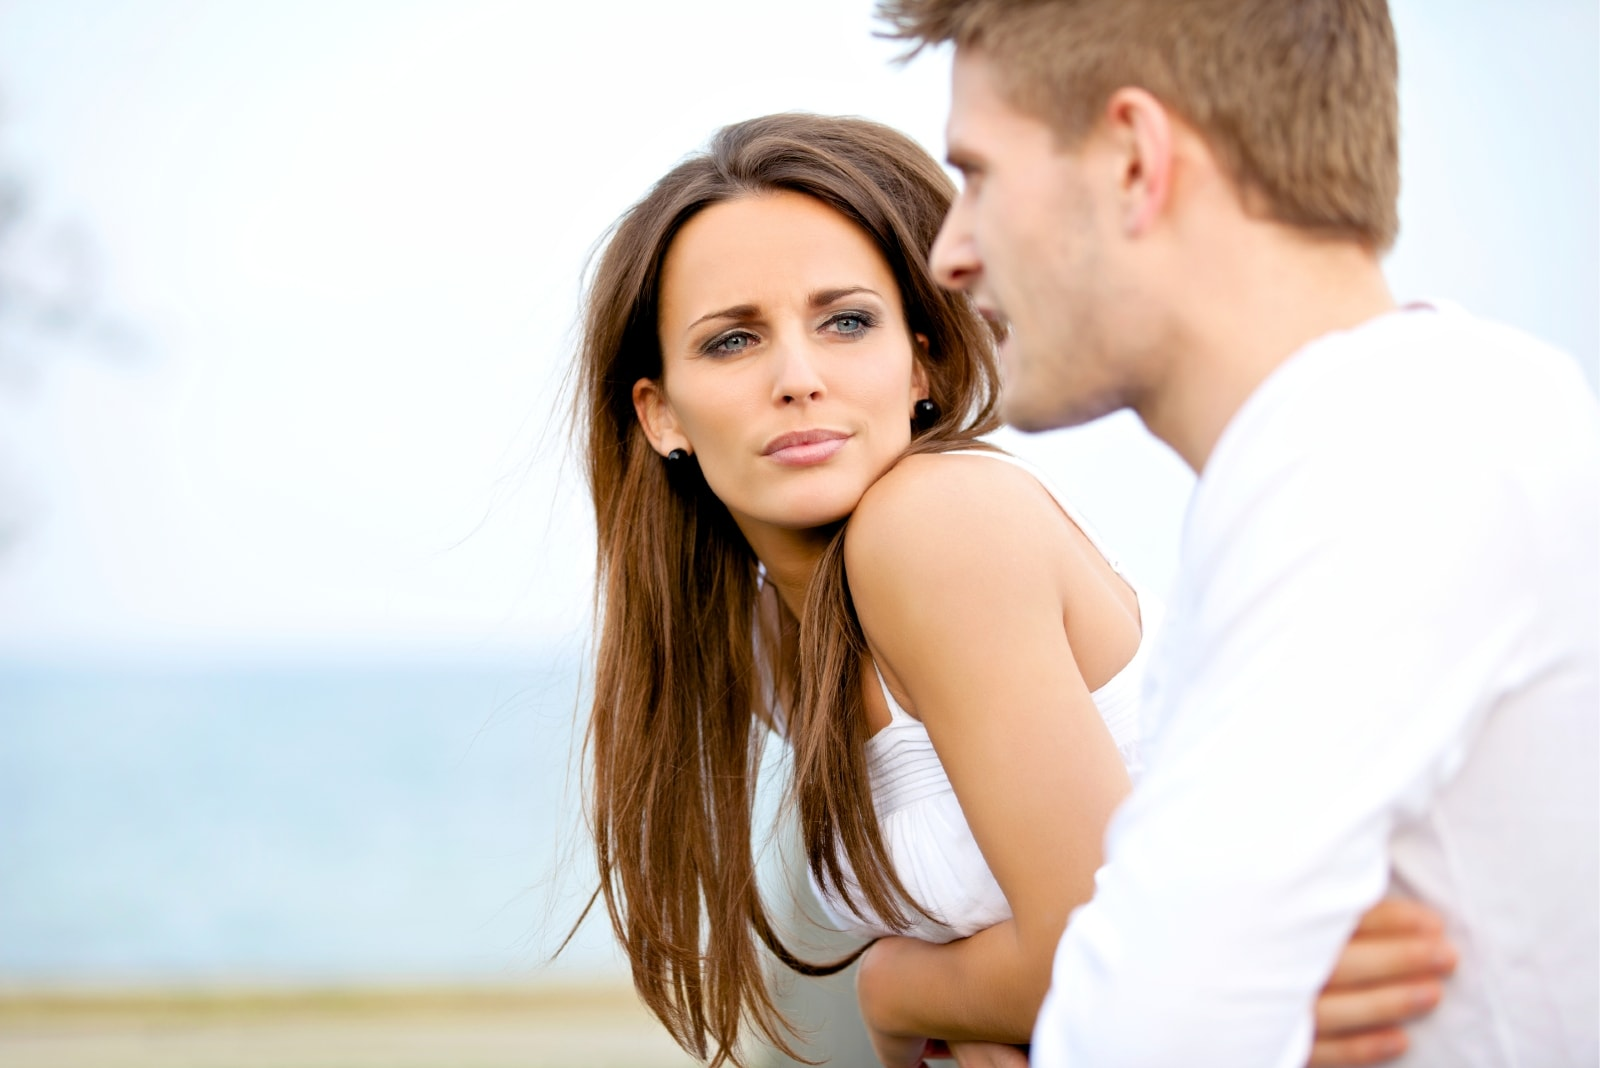 serious woman in white top listening to man